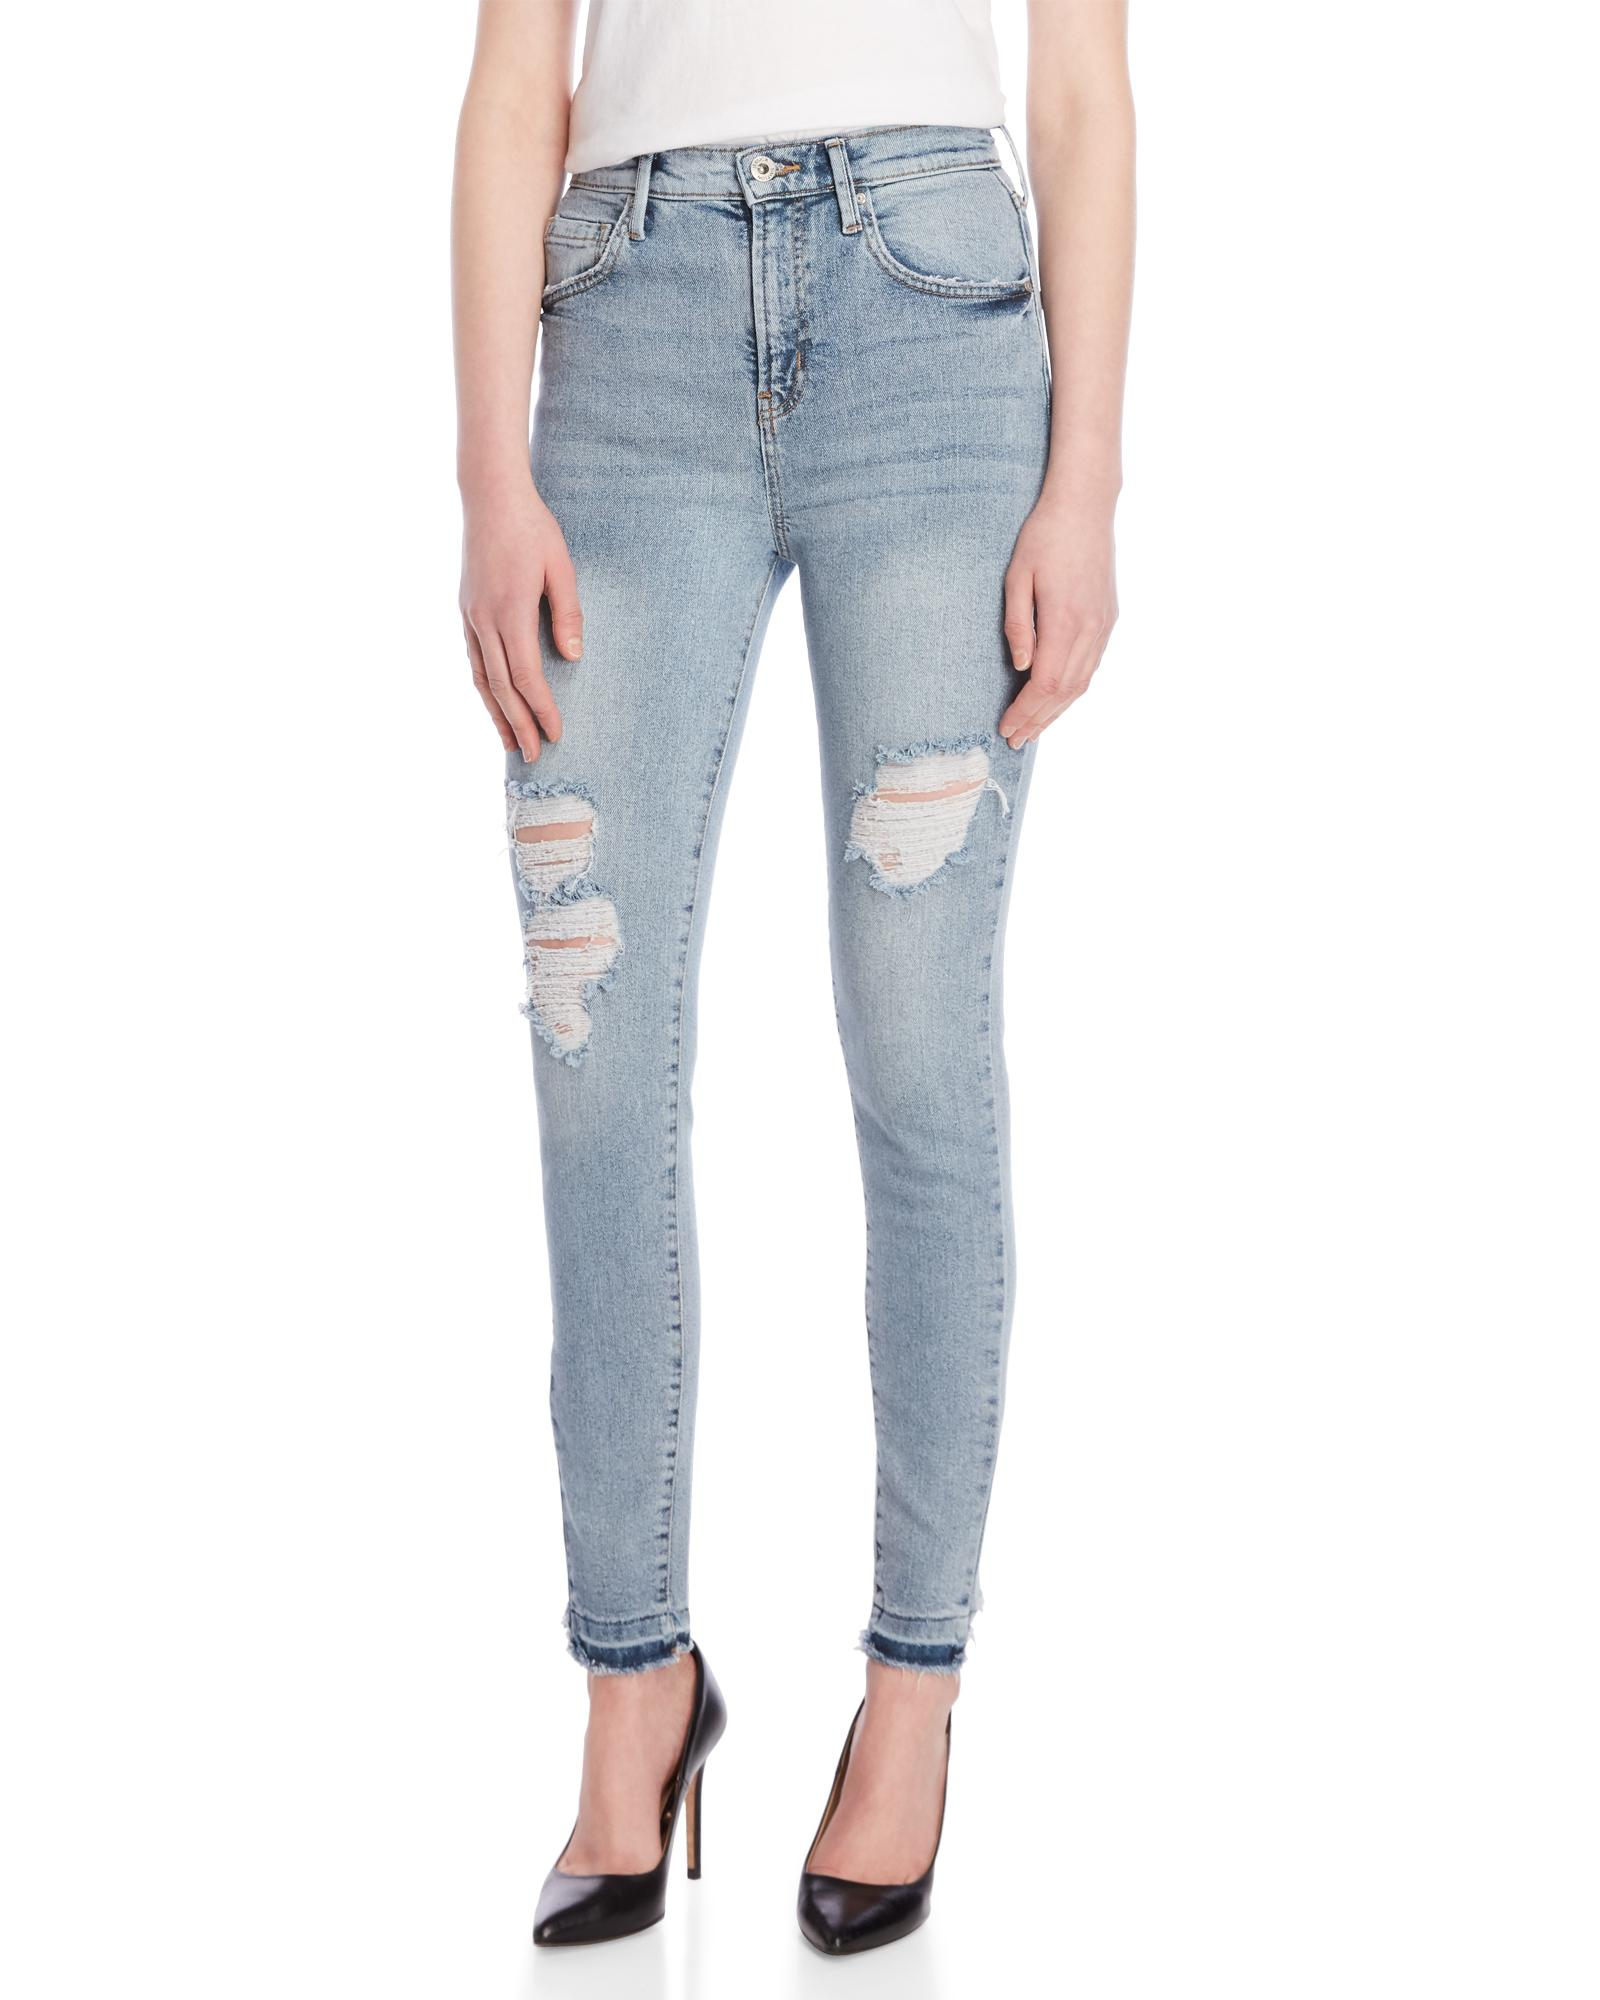 ebf93470ce0 Lyst - Jessica Simpson Infinite Slim Straight Jeans in White